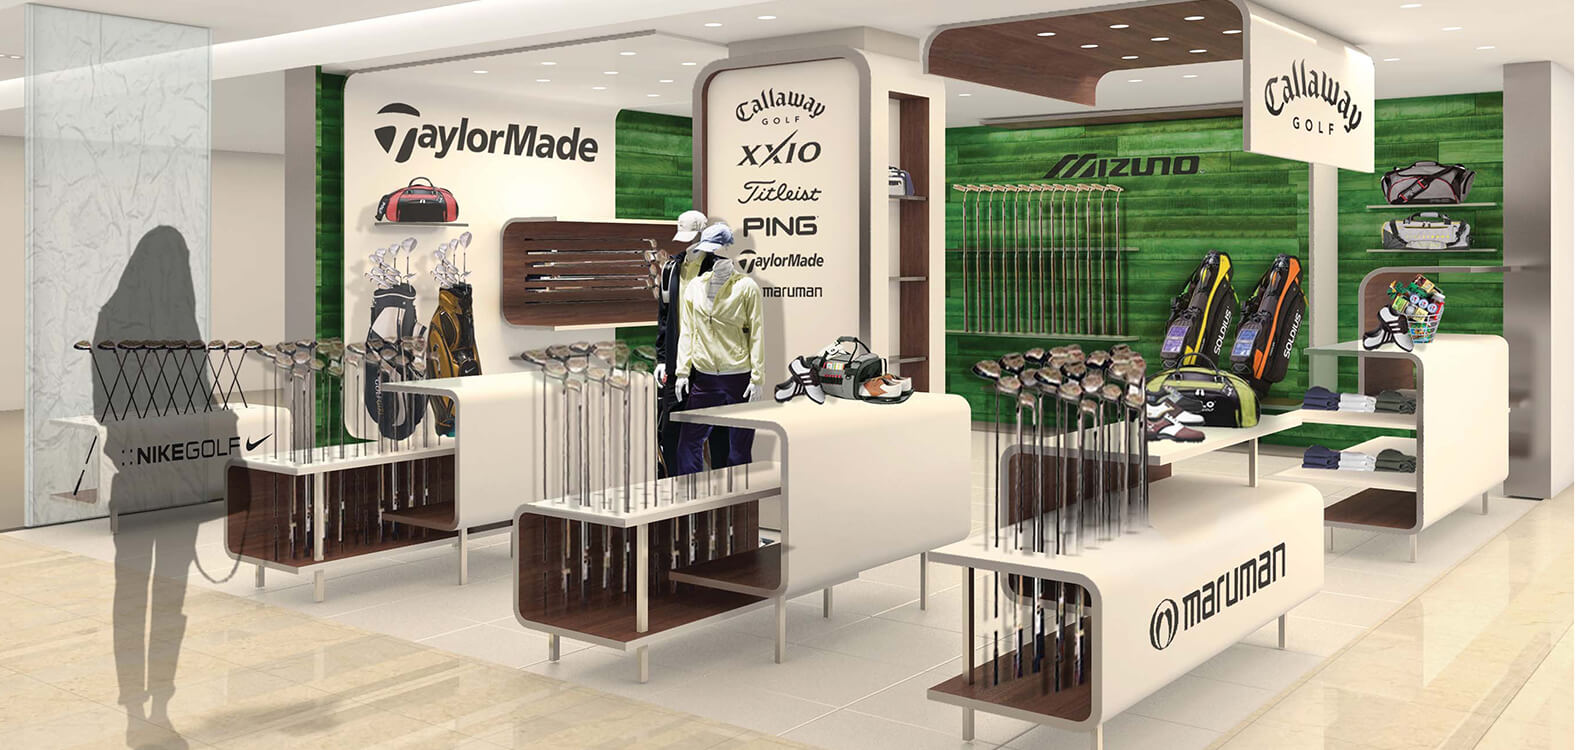 Golf Shop, Chungcheong, S. Korea